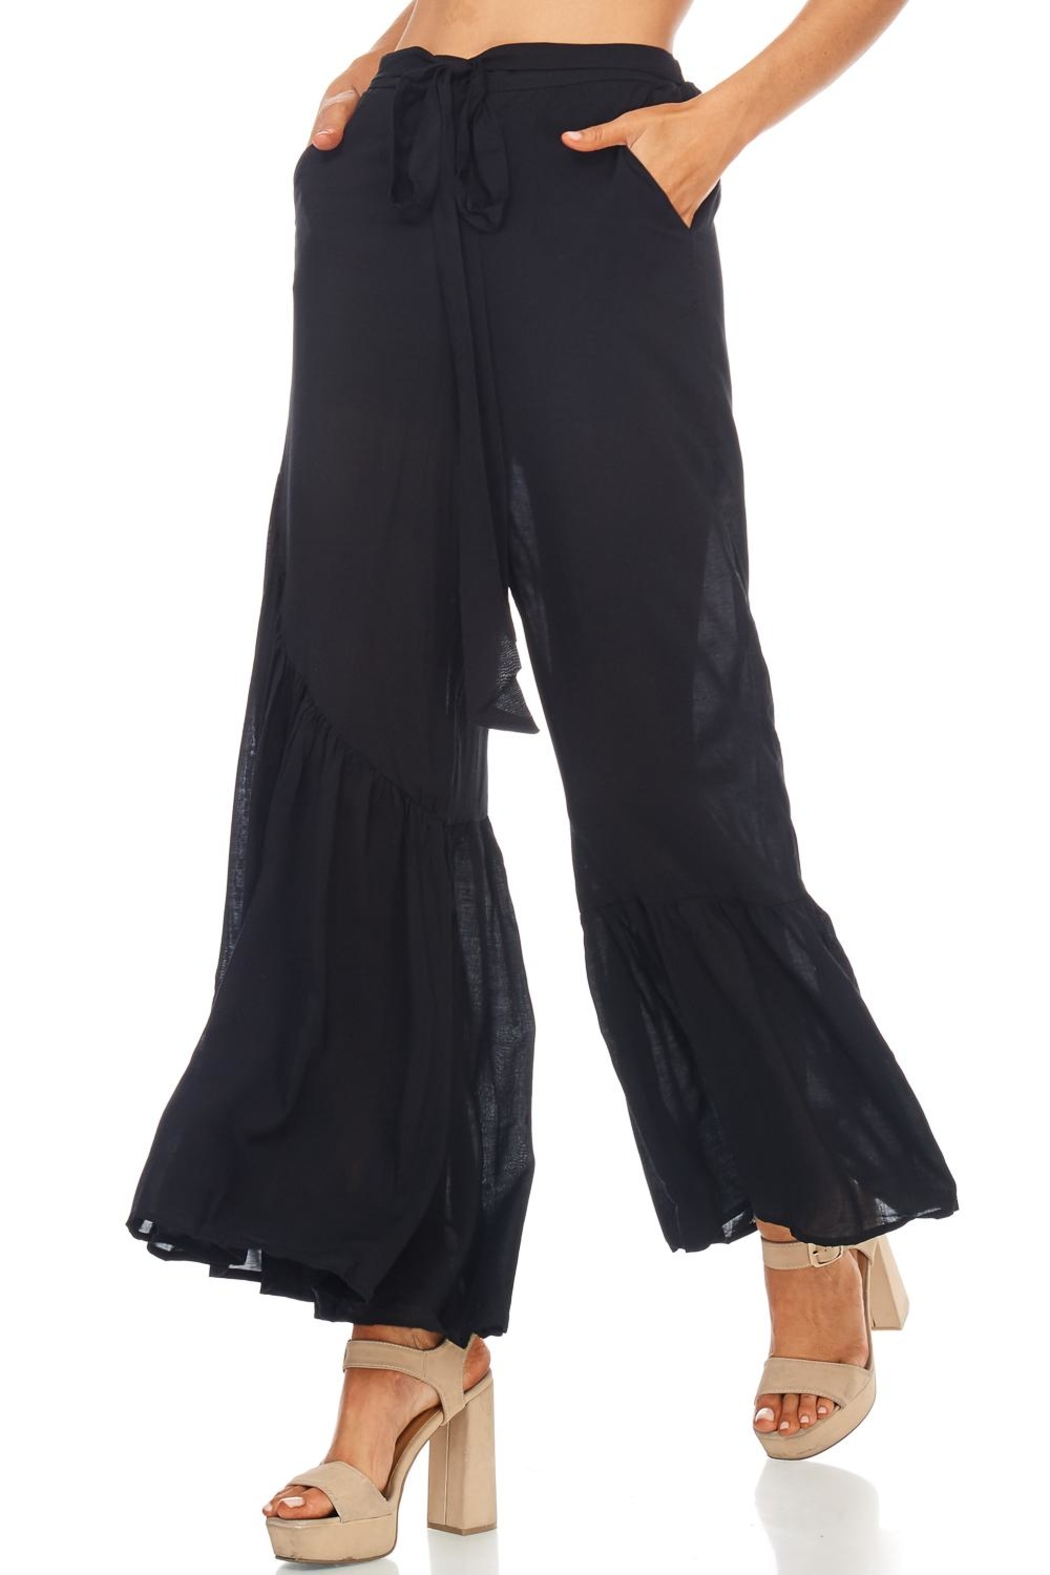 Favlux Bell Bottom Pants - Back Cropped Image